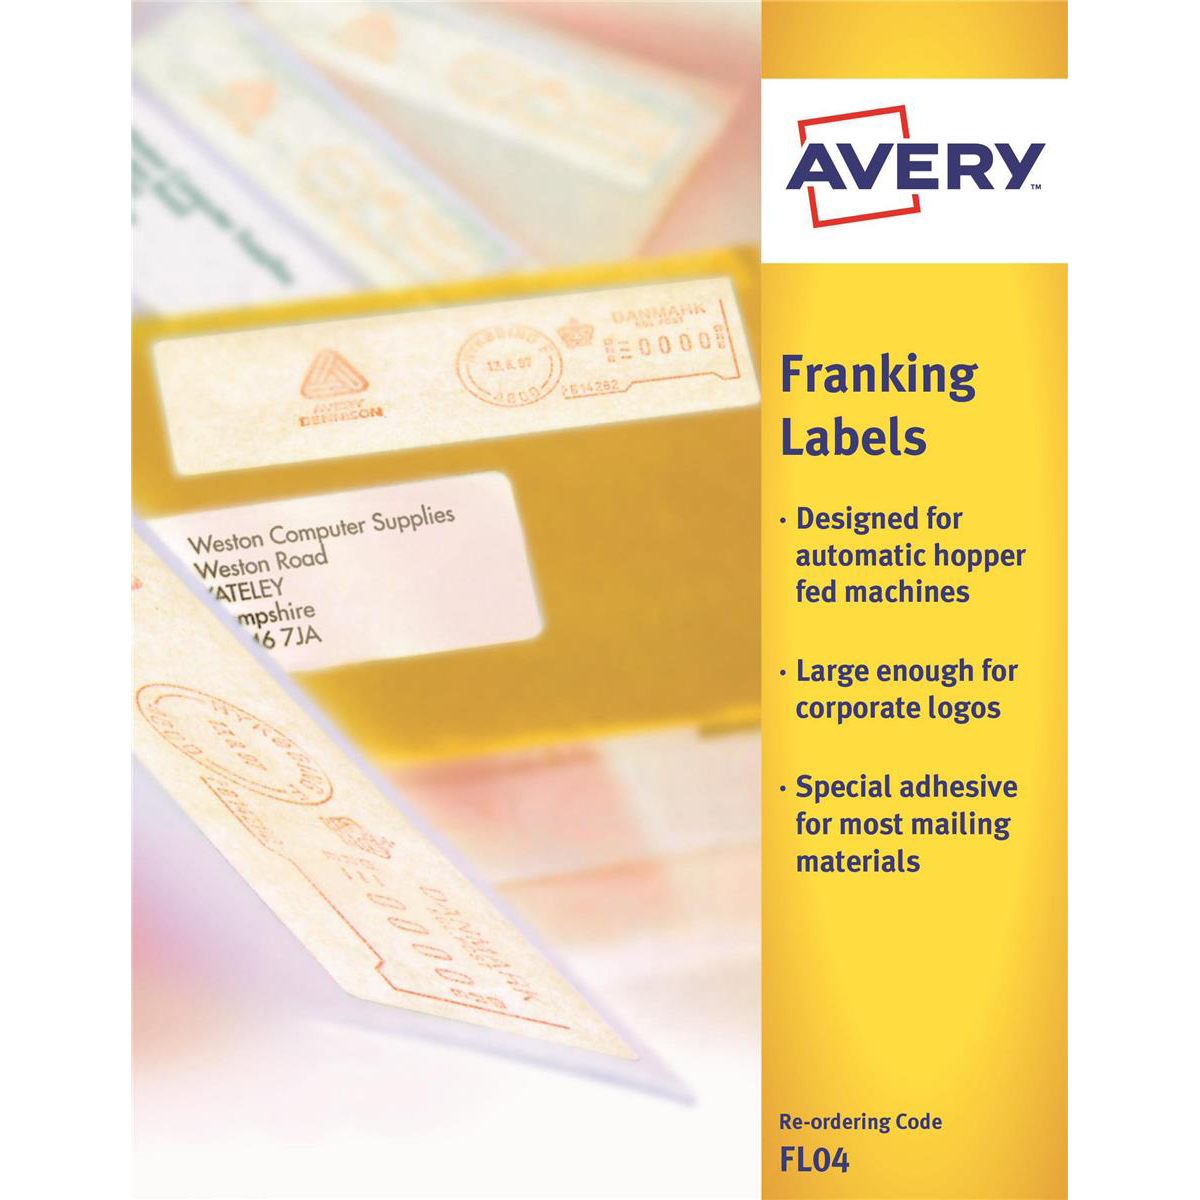 Avery Auto Franking Labels 1 per Sheet 140x38mm White Ref FL04 1000 Labels